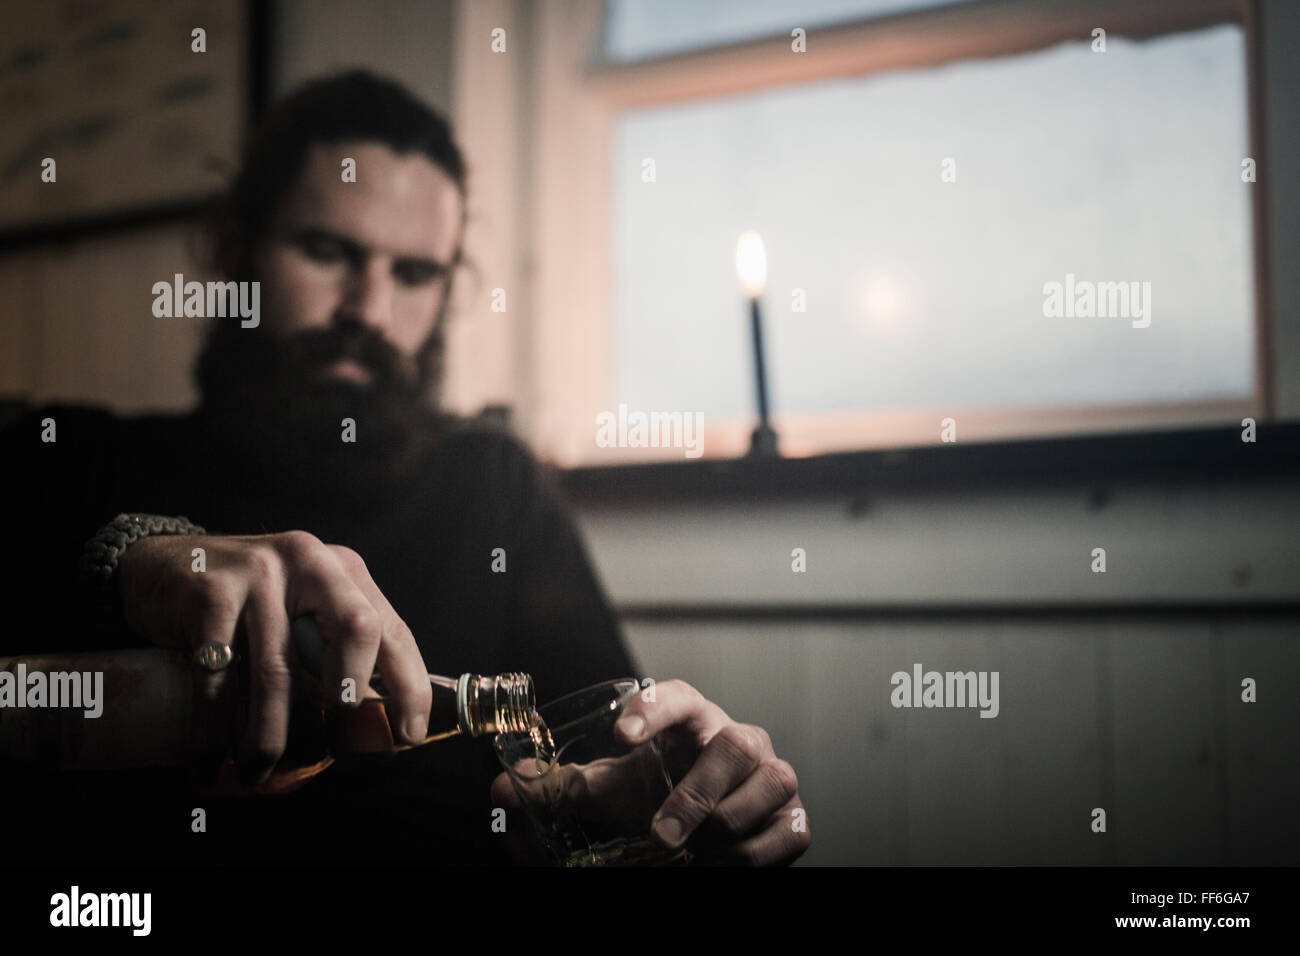 A man sitting alone in a room pouring himself a glass of whisky. A lit candle. - Stock Image